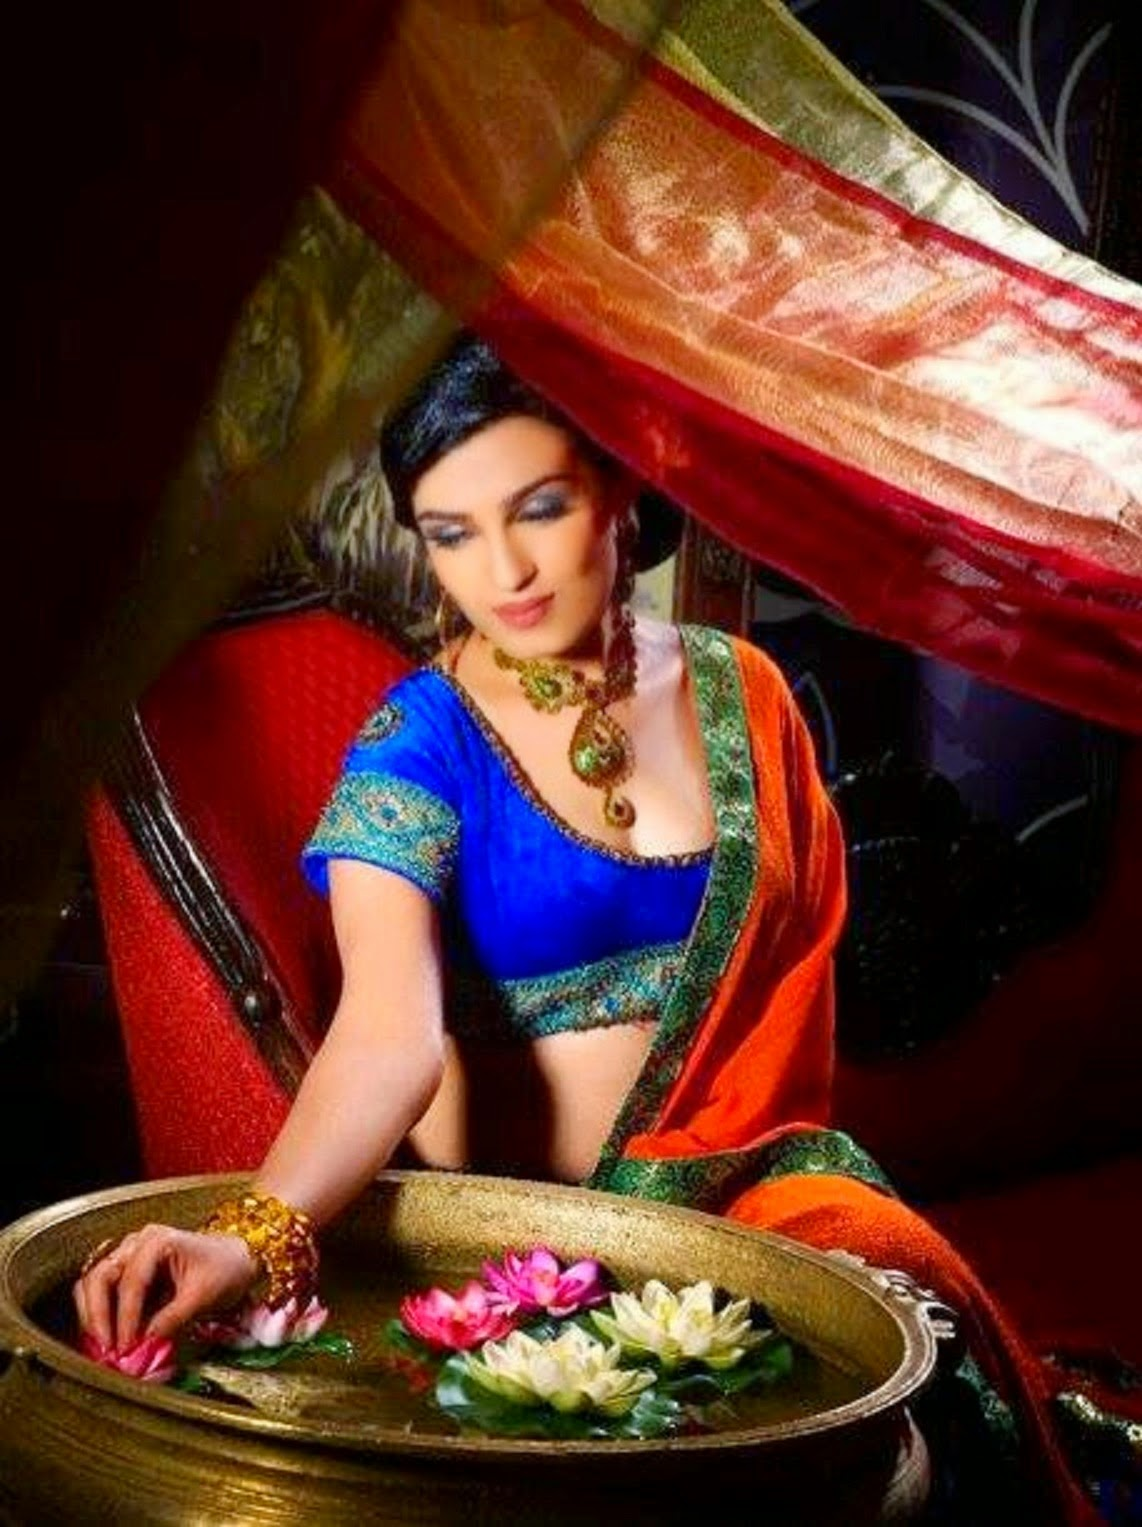 shiny doshi hd wallpapers free download ~ bollywood hd wallpapers 2015